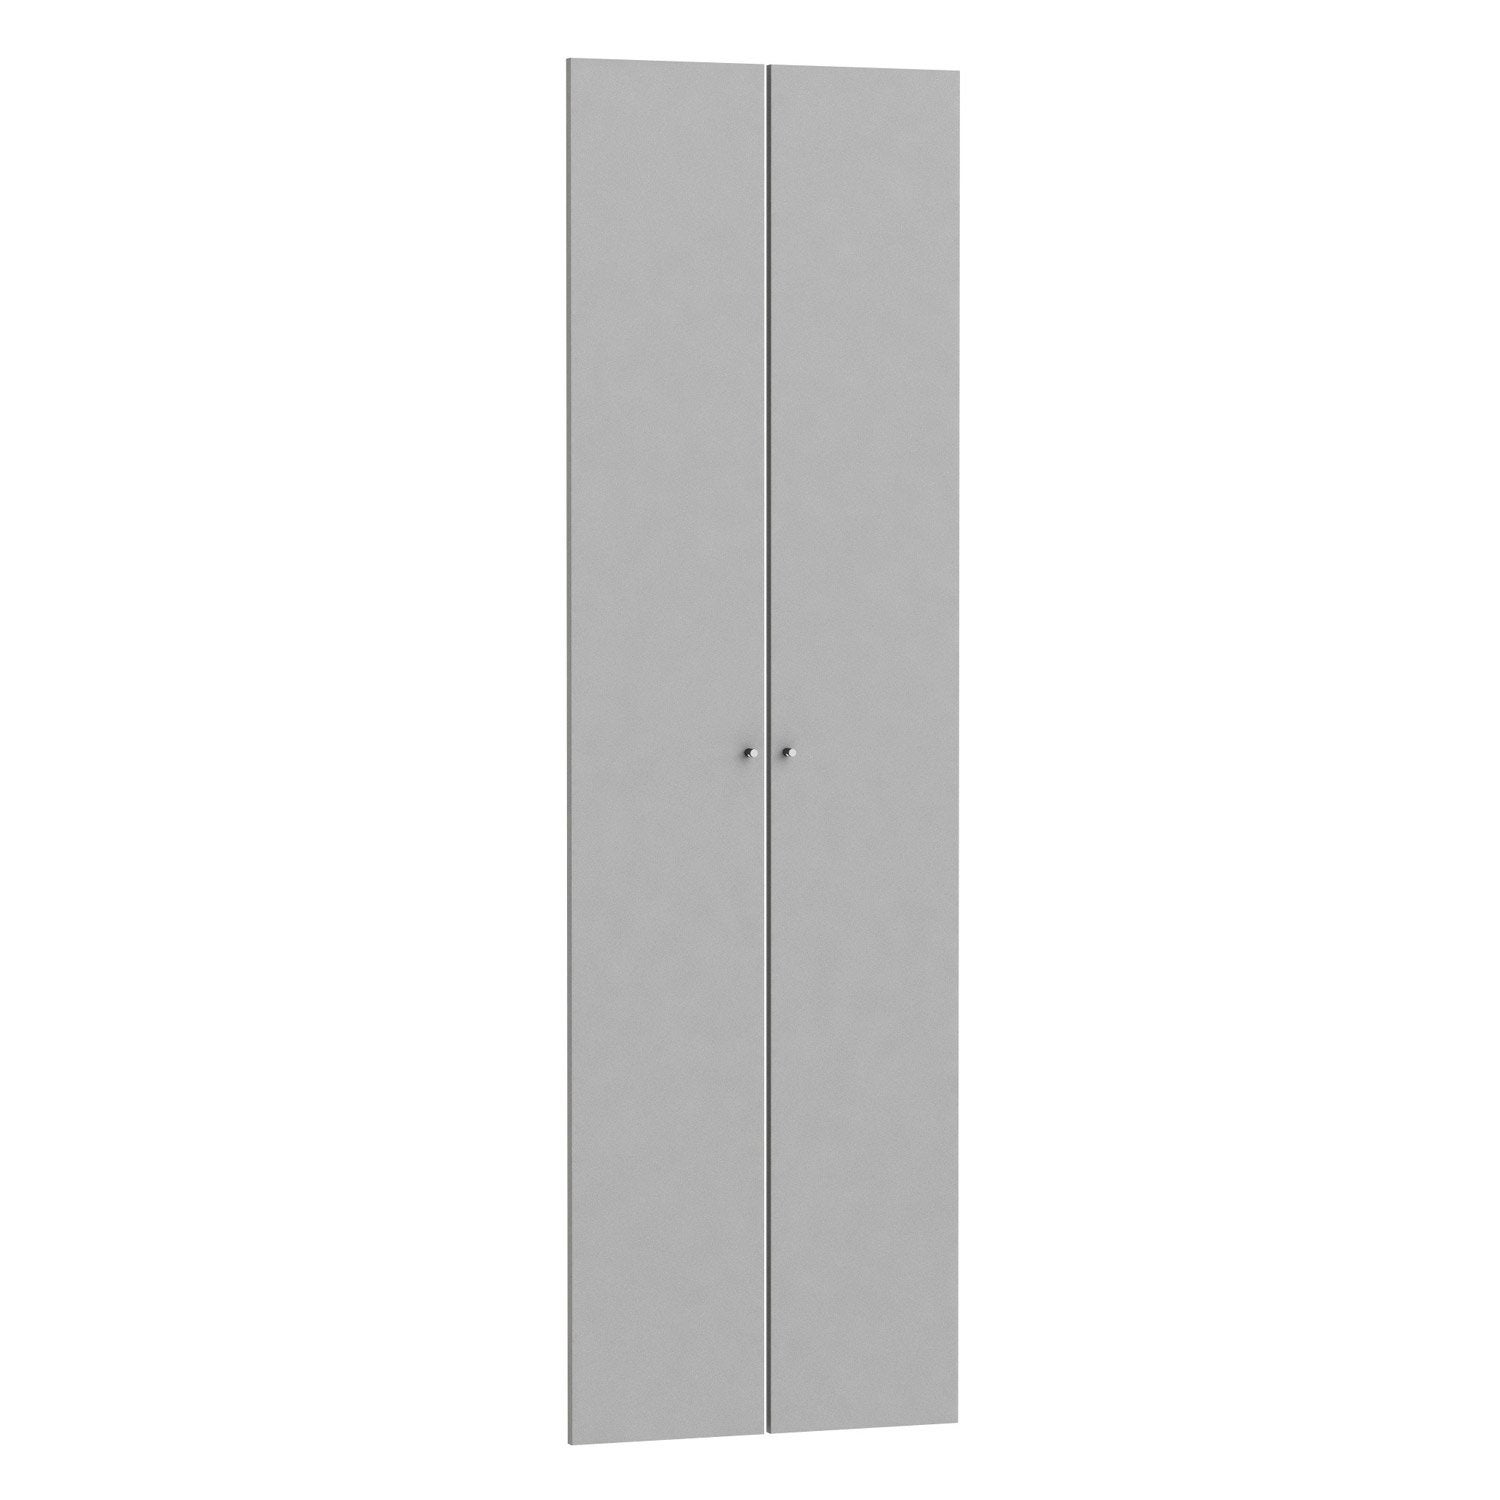 Lot de 2 portes battantes spaceo home 200 x 30 x 1 6 cm for Porte pliante 60 pouces